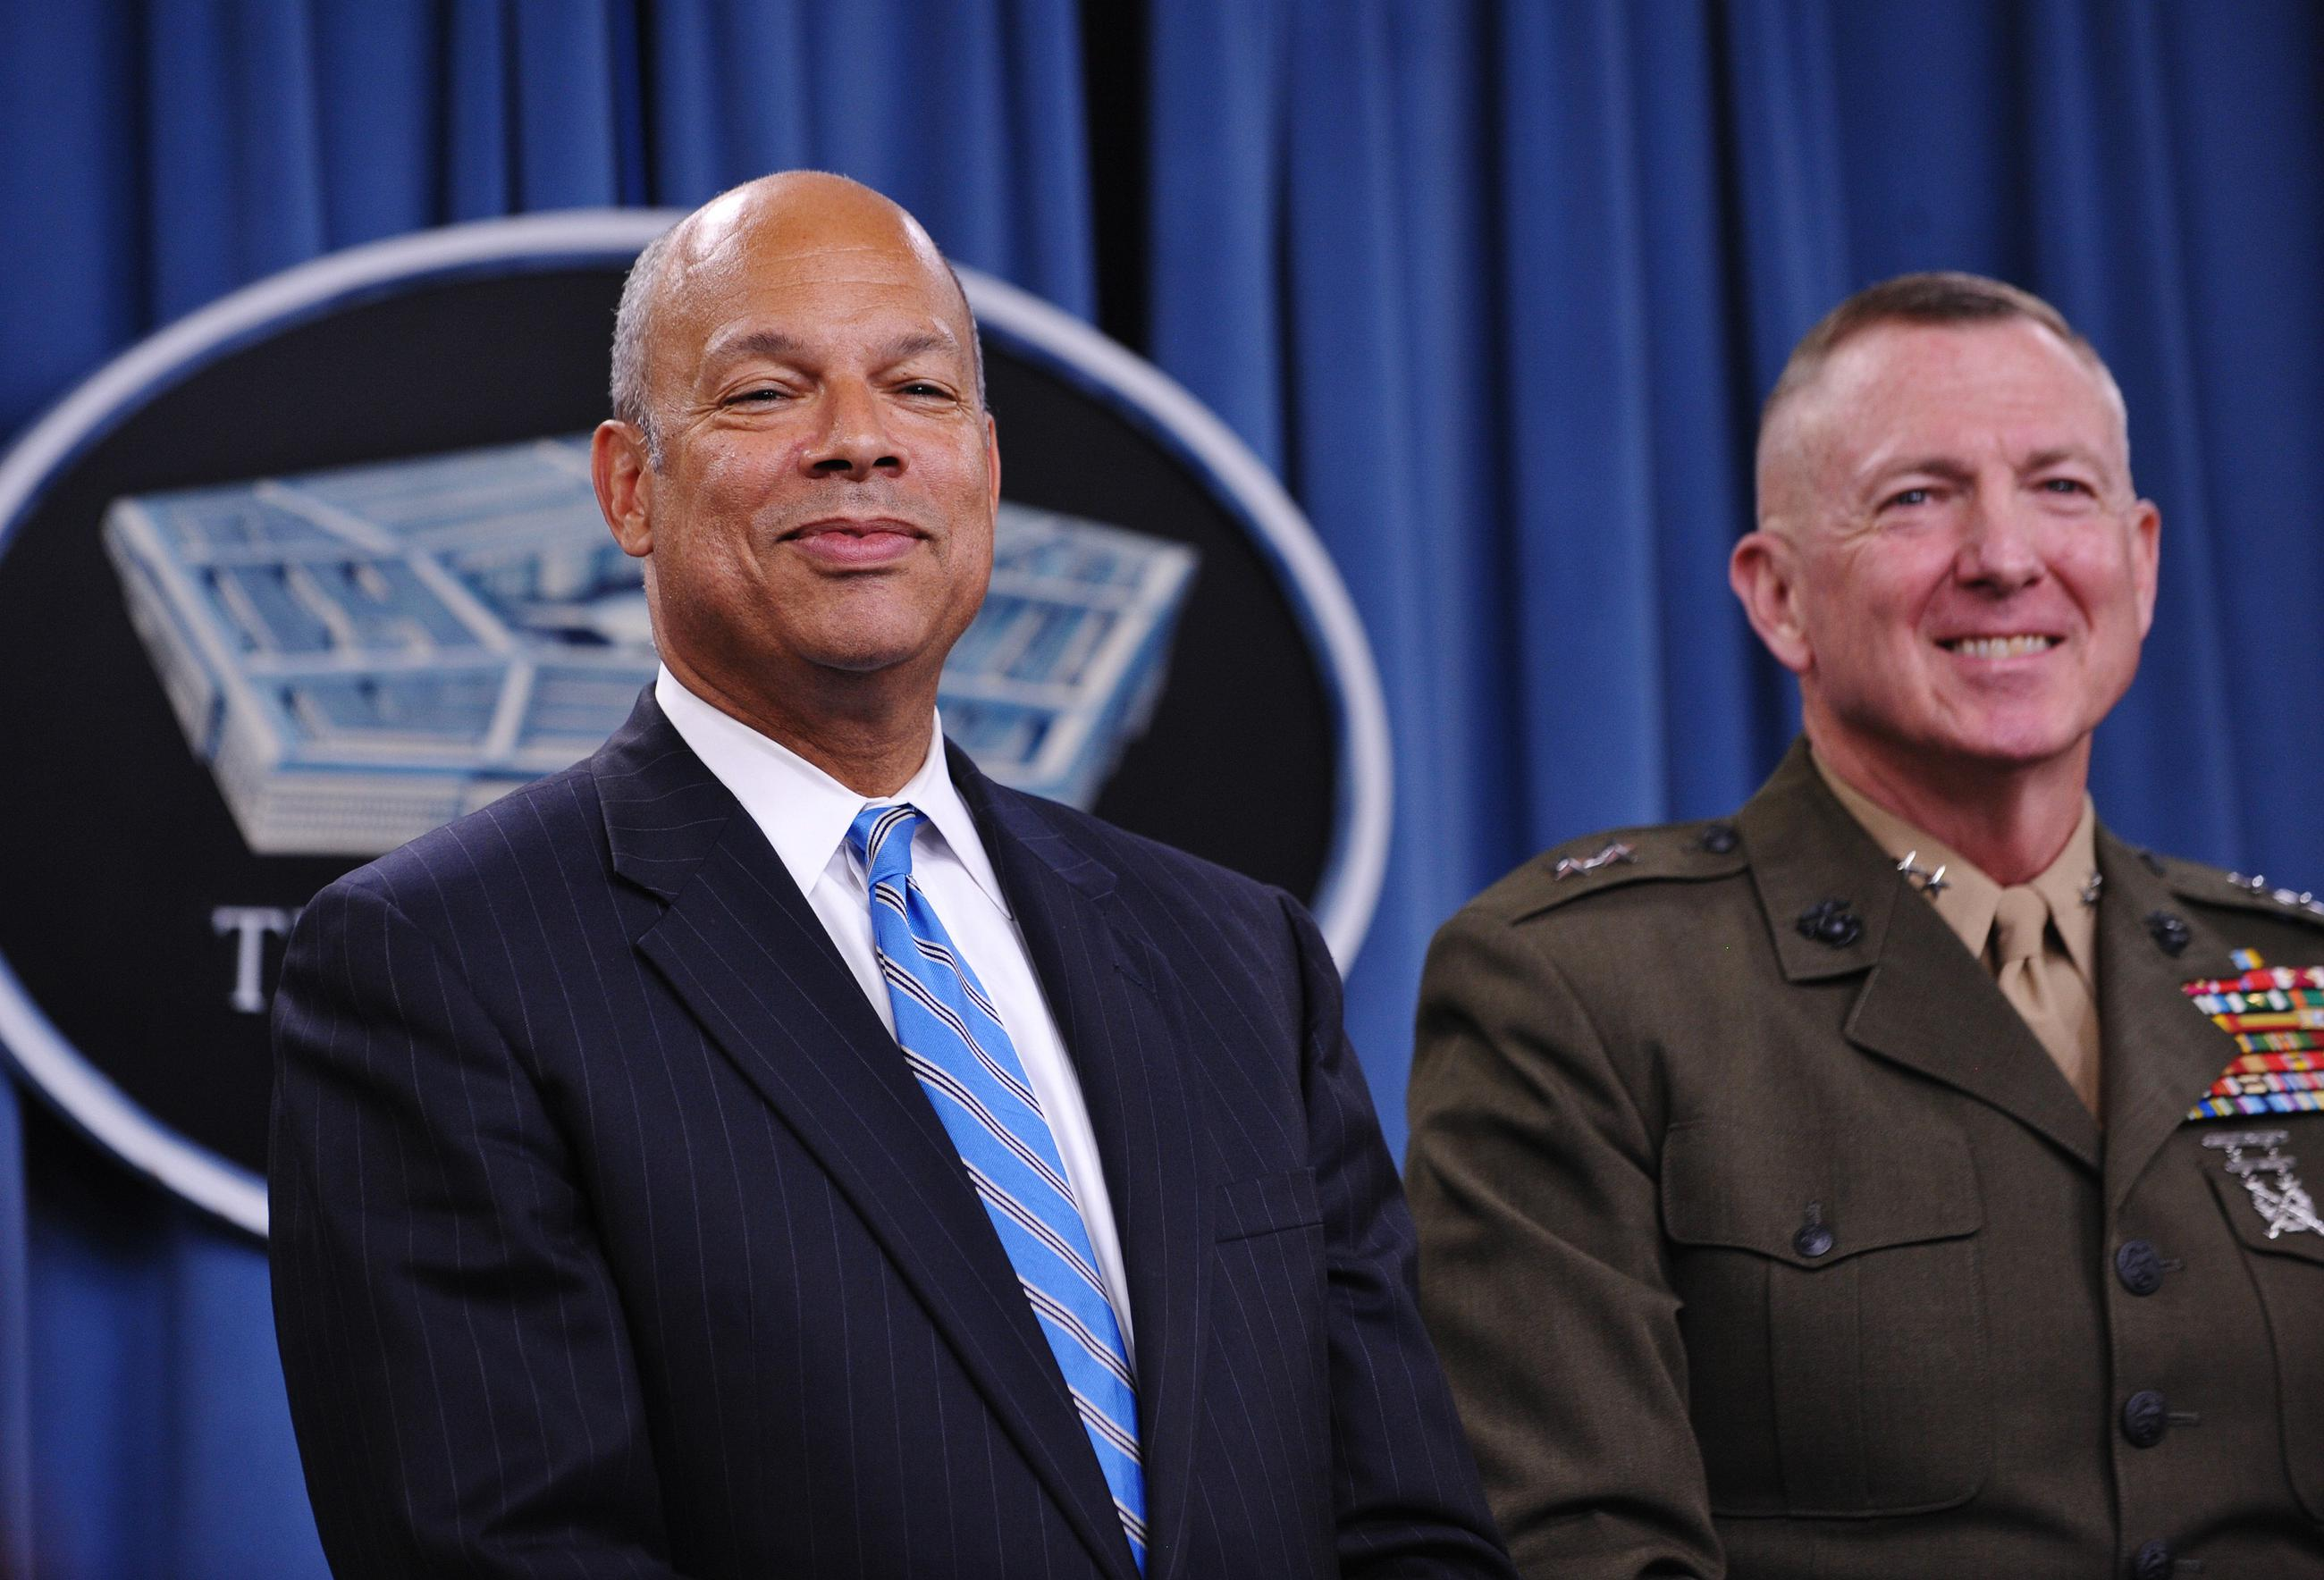 Meet Jeh Johnson: Drone Lawyer and Obama's Homeland Security Nominee